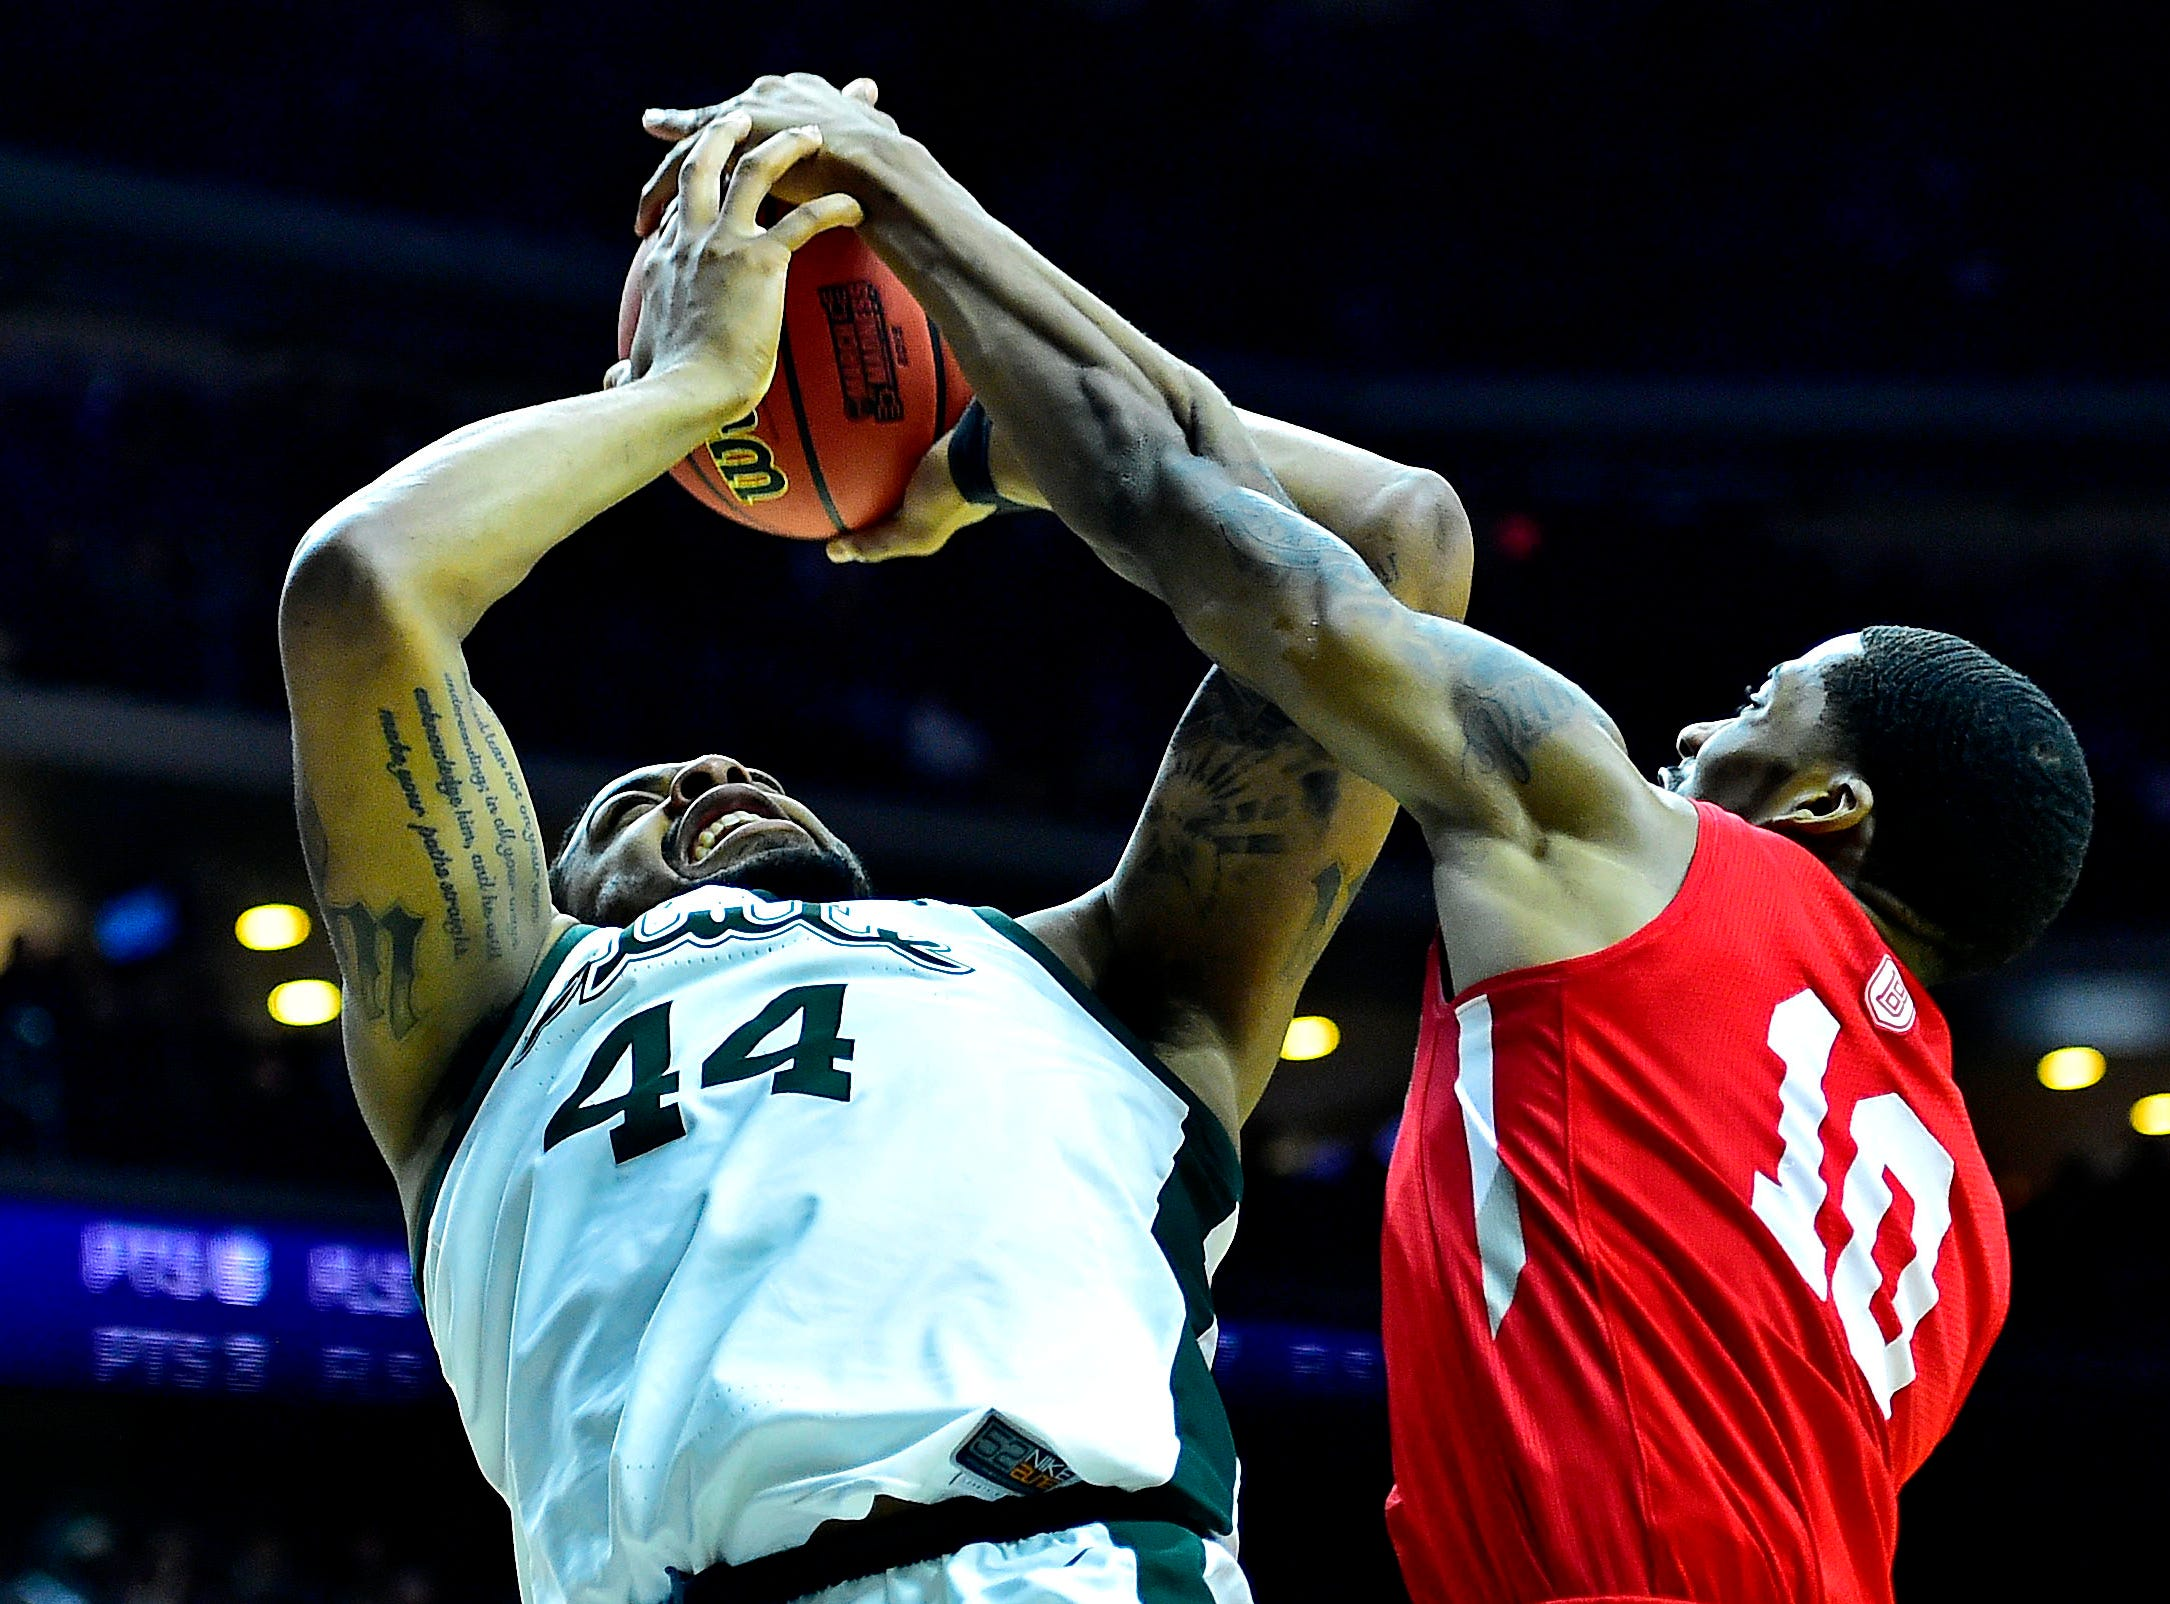 Michigan State Spartans forward Nick Ward (44) drives to the basket against Bradley Braves forward Elijah Childs (10) \d1\ in the first round of the 2019 NCAA Tournament at Wells Fargo Arena.